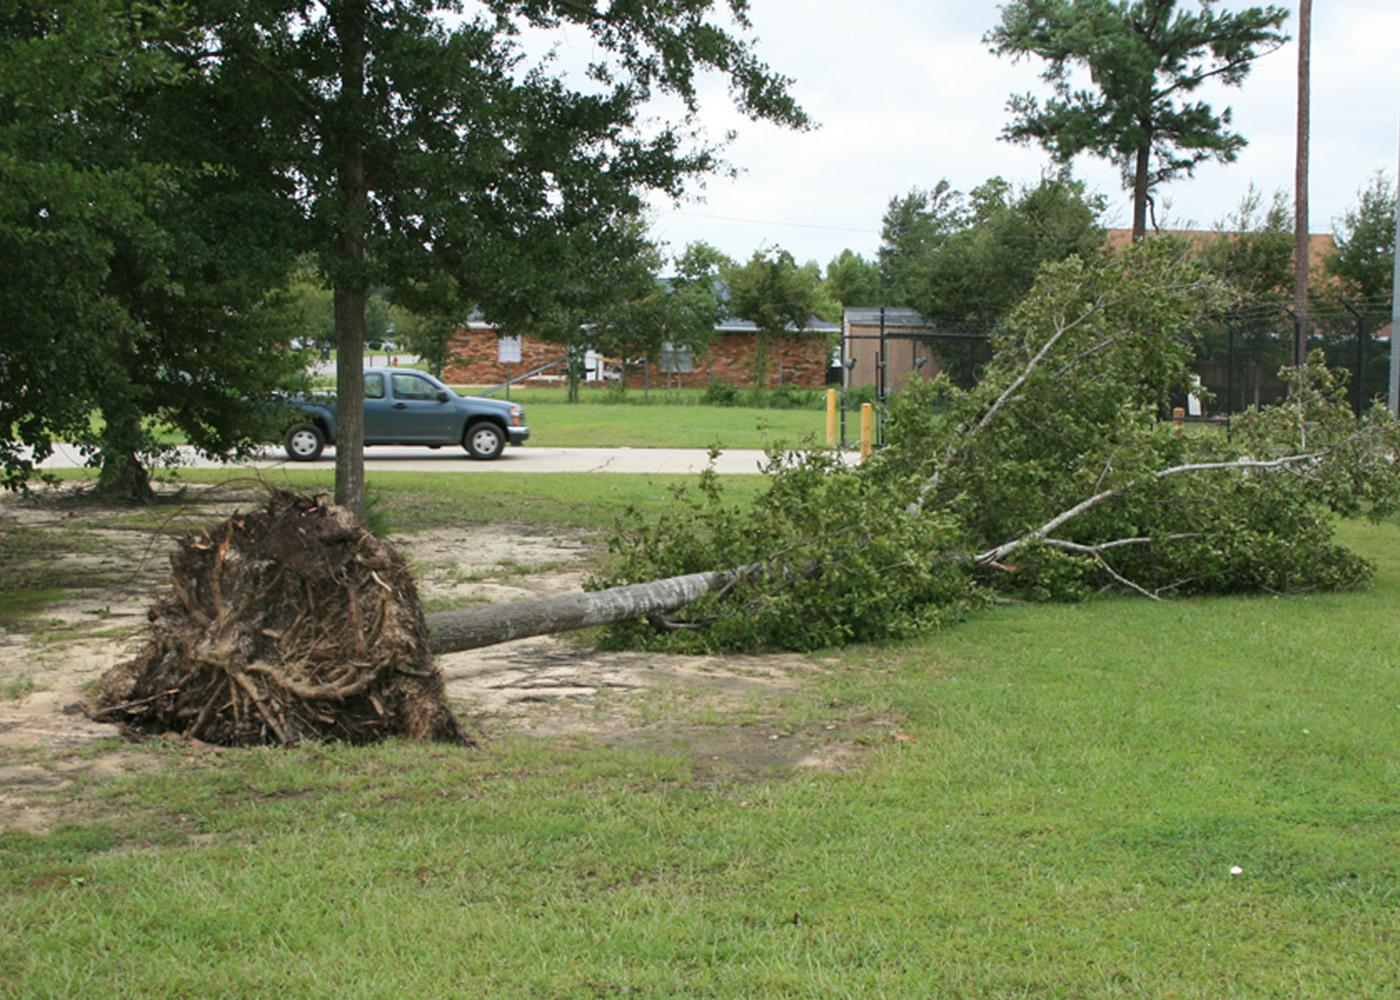 Some trees put down deep roots, but most of the root system is in the top 12 to 14 inches of soil. This tree, with its roots ripped out of the ground, has little chance of recovery. Trees can heal themselves after storm damage in a process called compartmentalization.